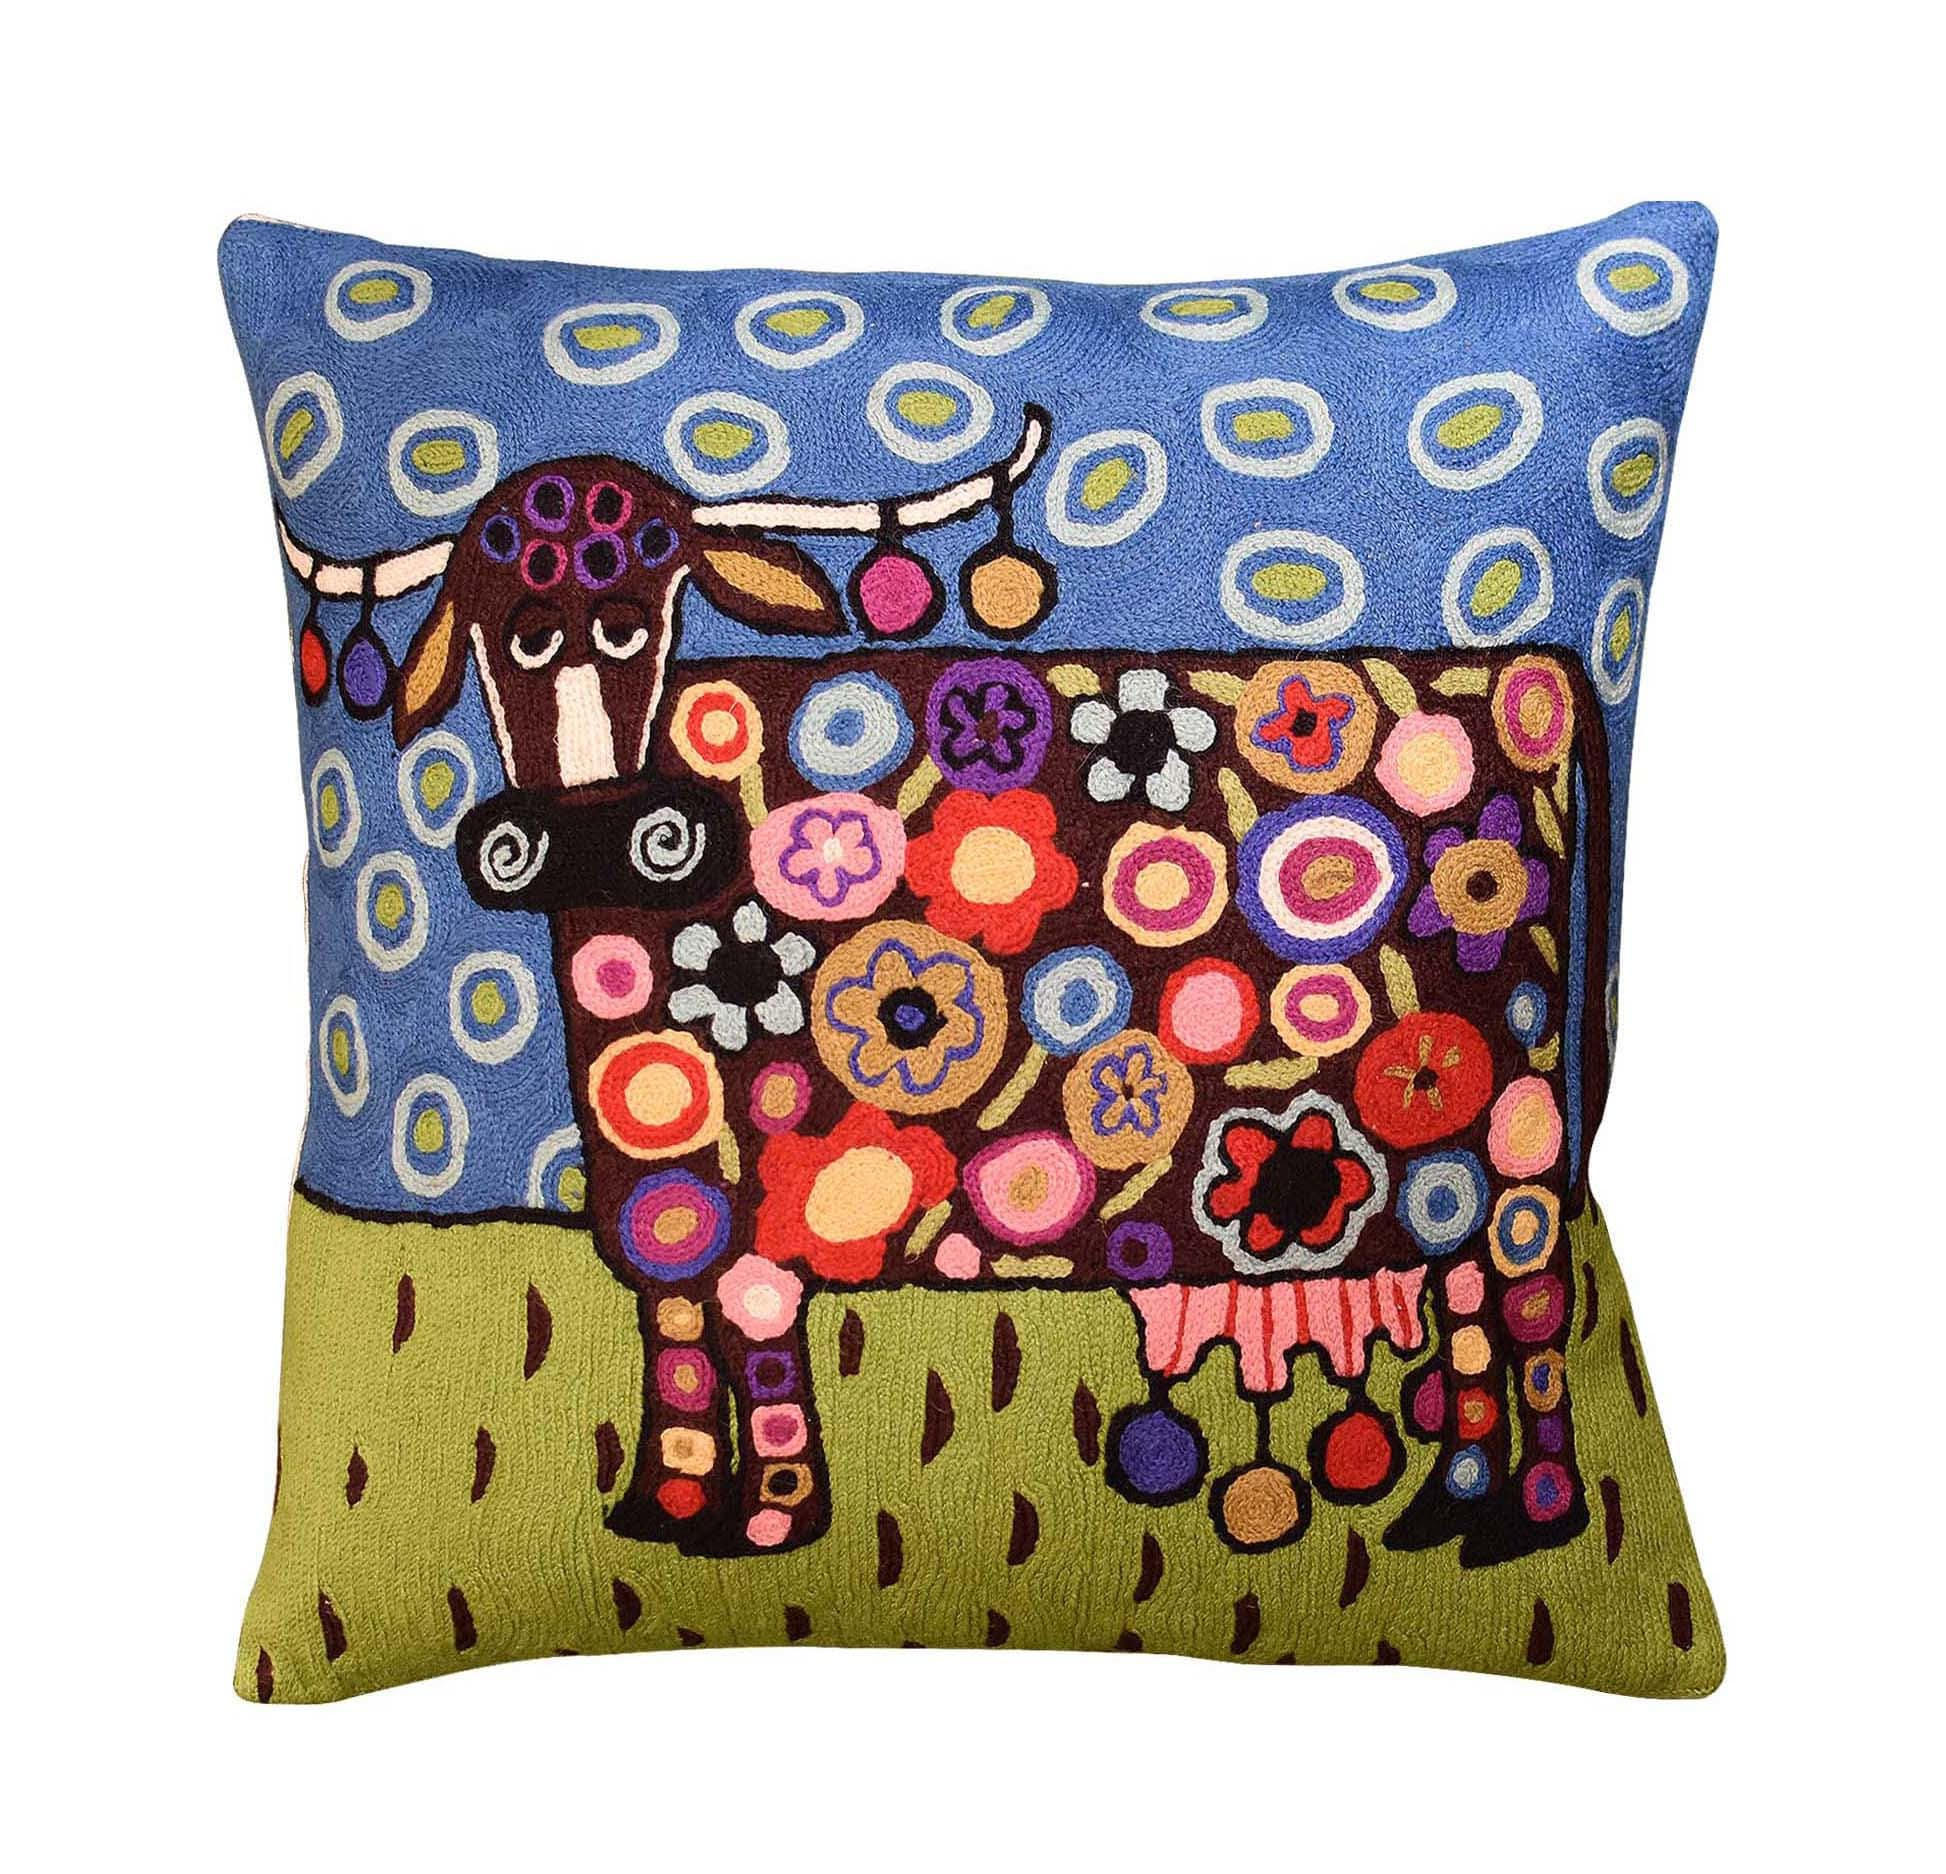 Karla Décoratrice D'intérieur Blooming Cow Karla Gerard Decorative Pillow Cover Handembroidered Wool 18